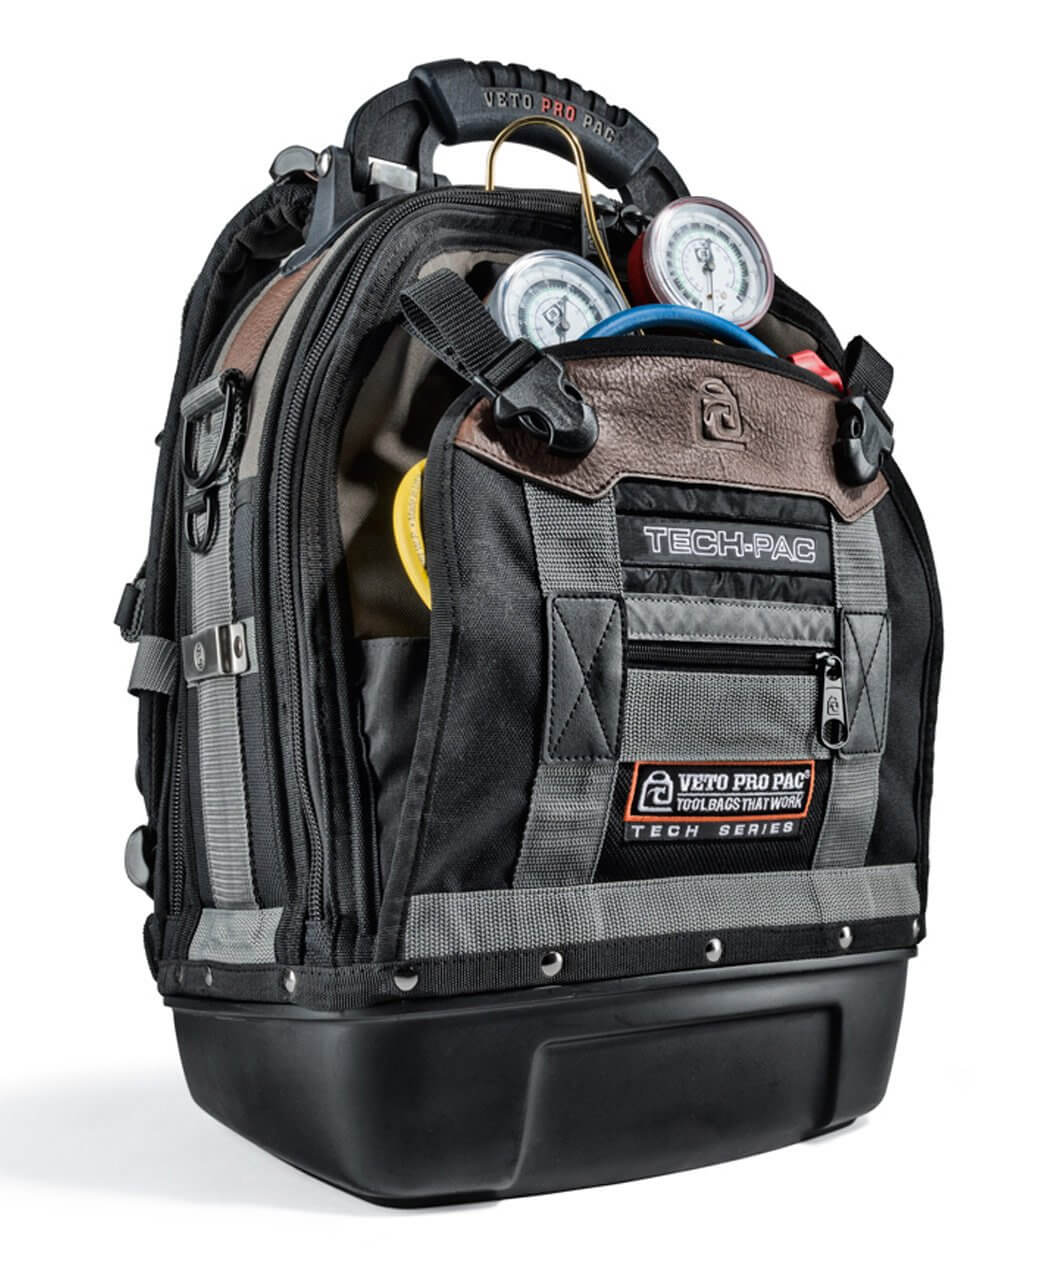 Veto Pro Pac Tech Pac Tool Backpack with 56 Pockets